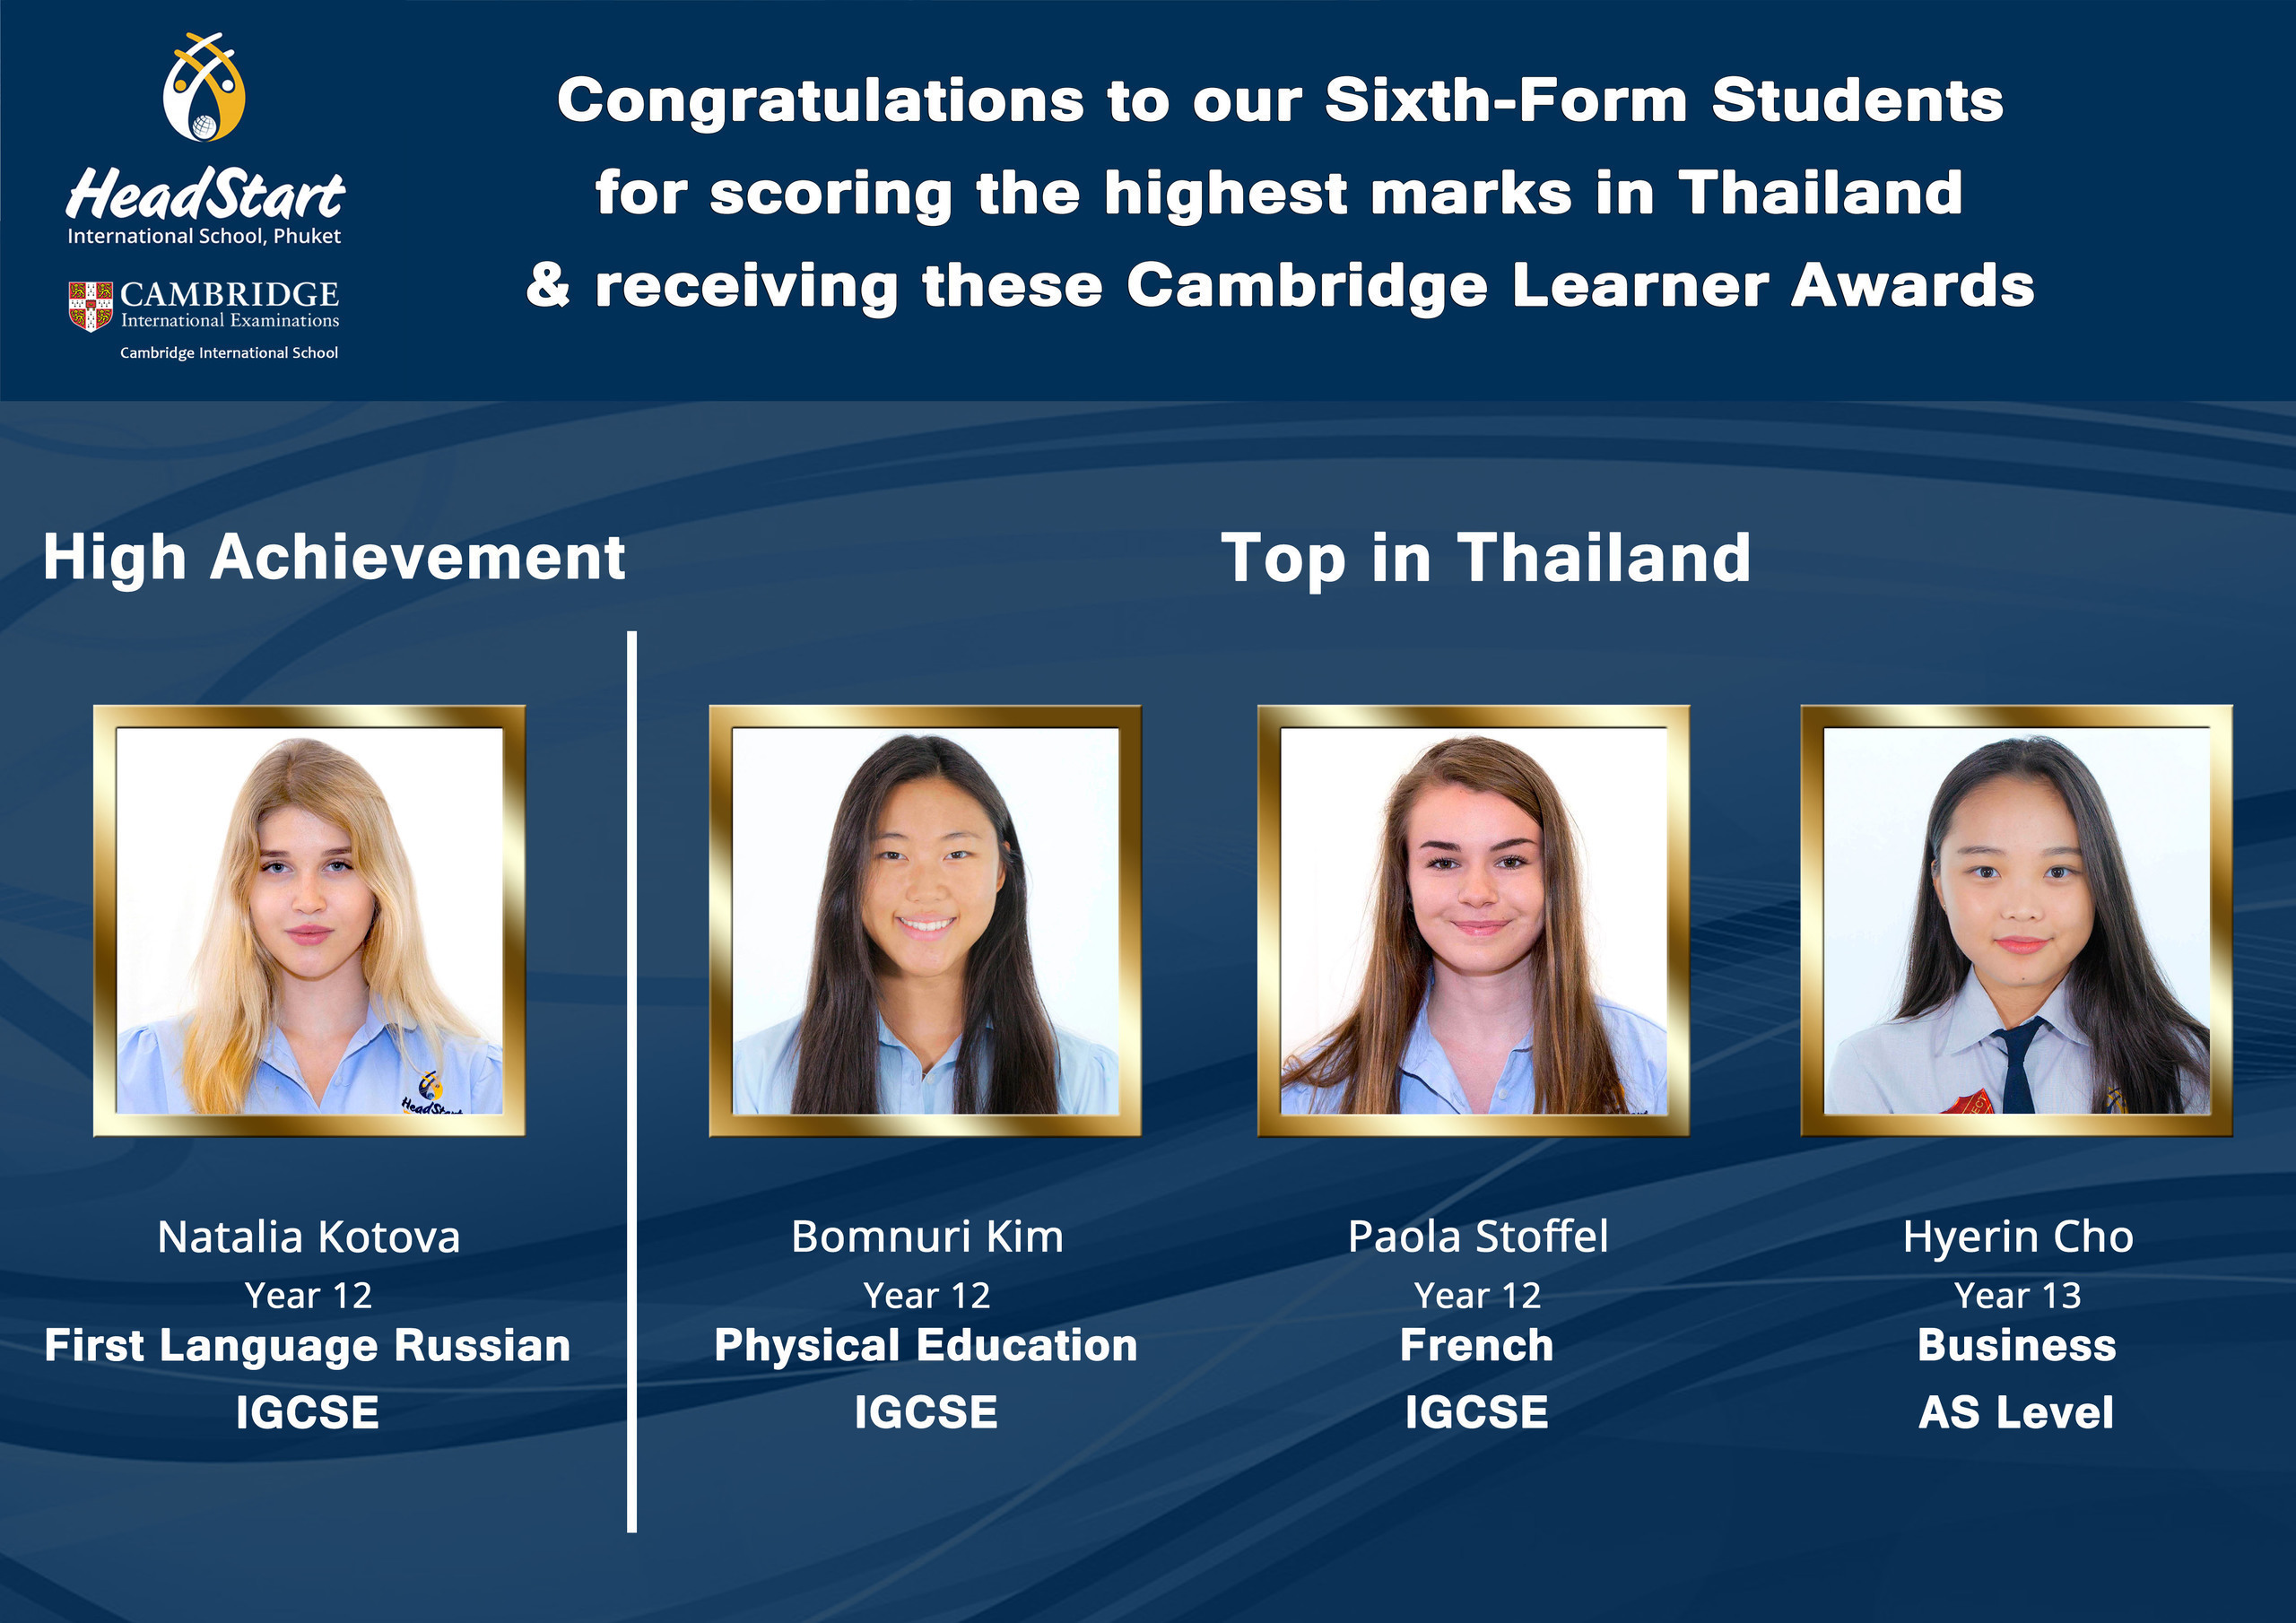 Congratulations to our sixth form students A3